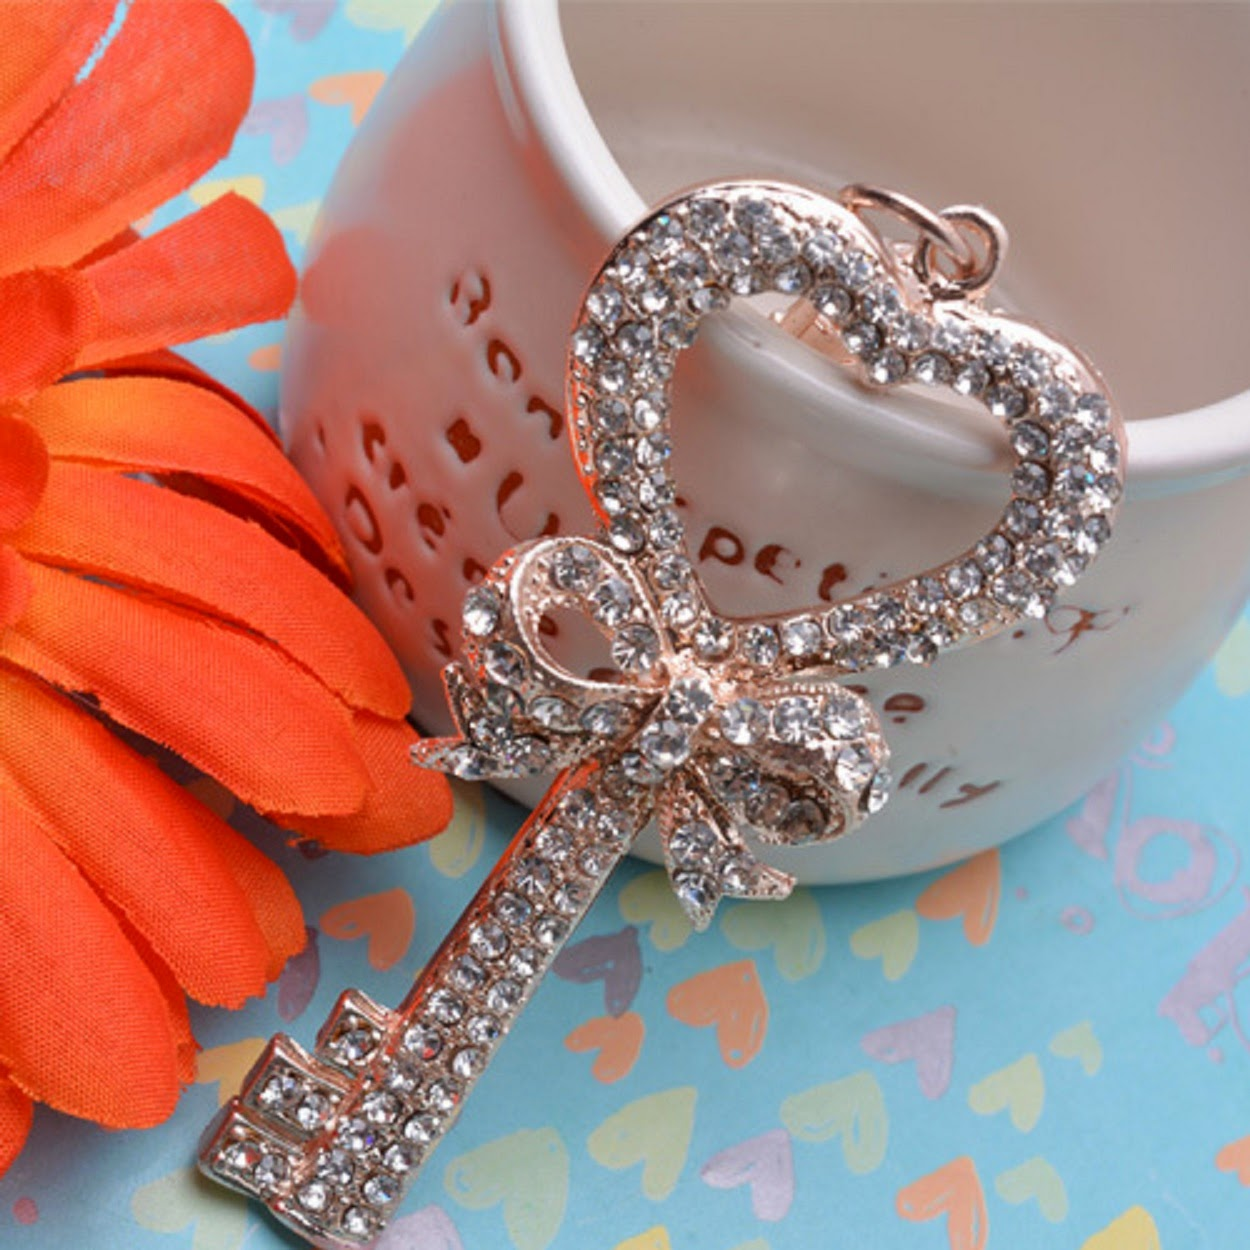 Love Keychains HD Wallpaper Free My Another Blog